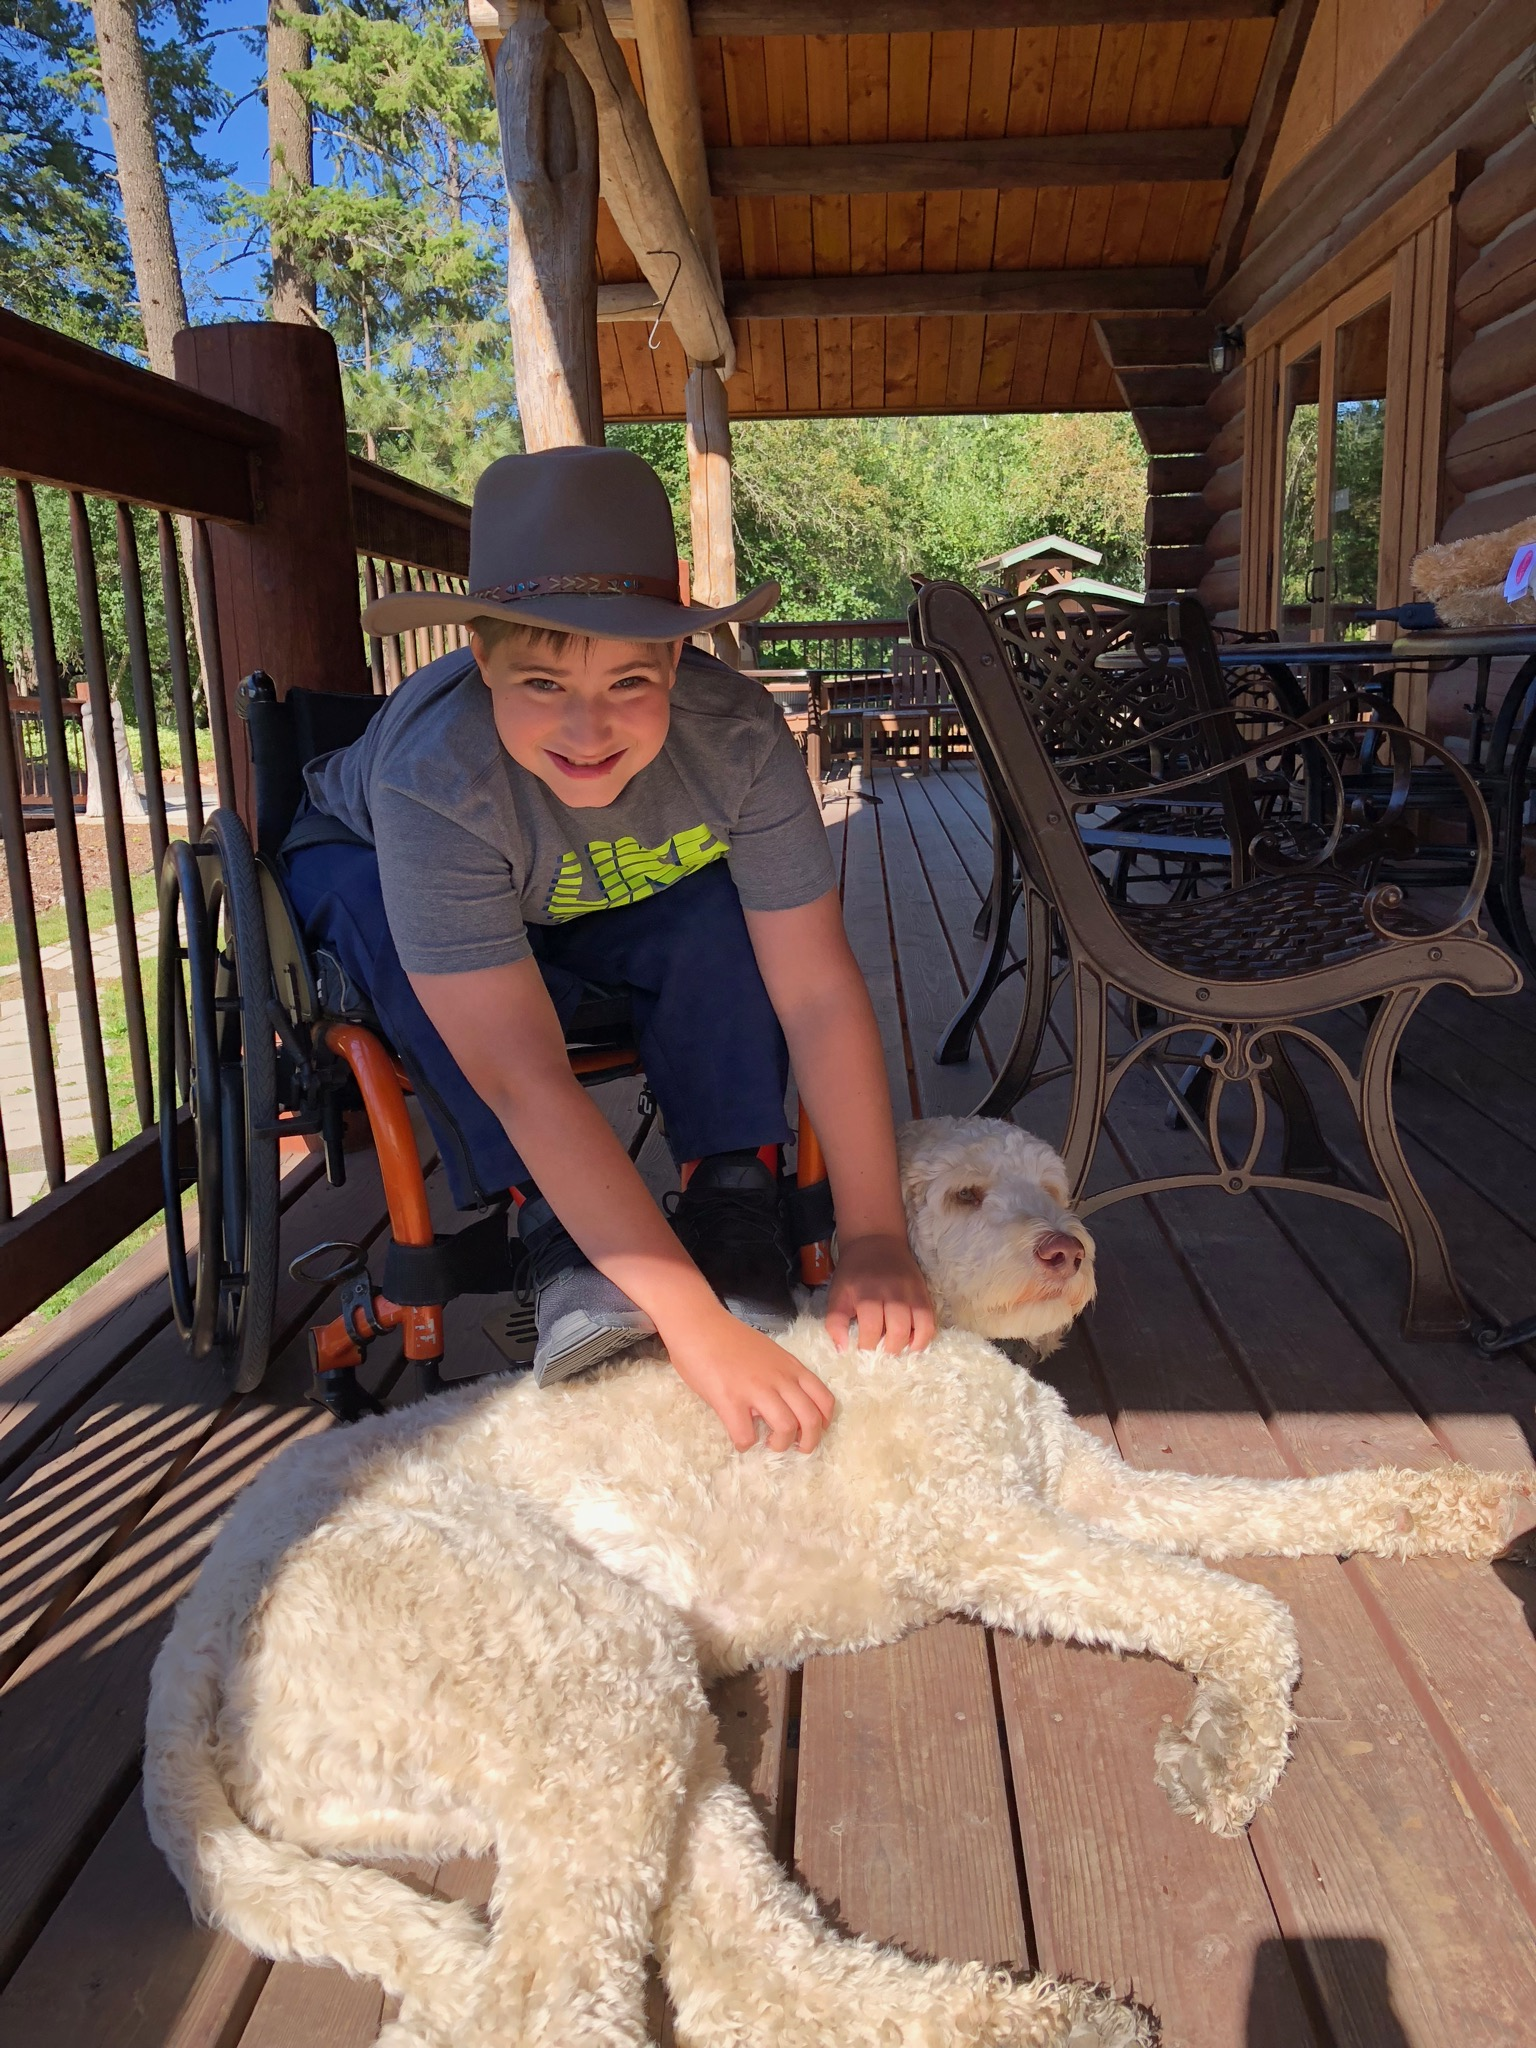 Young boy petting Willie the dog.